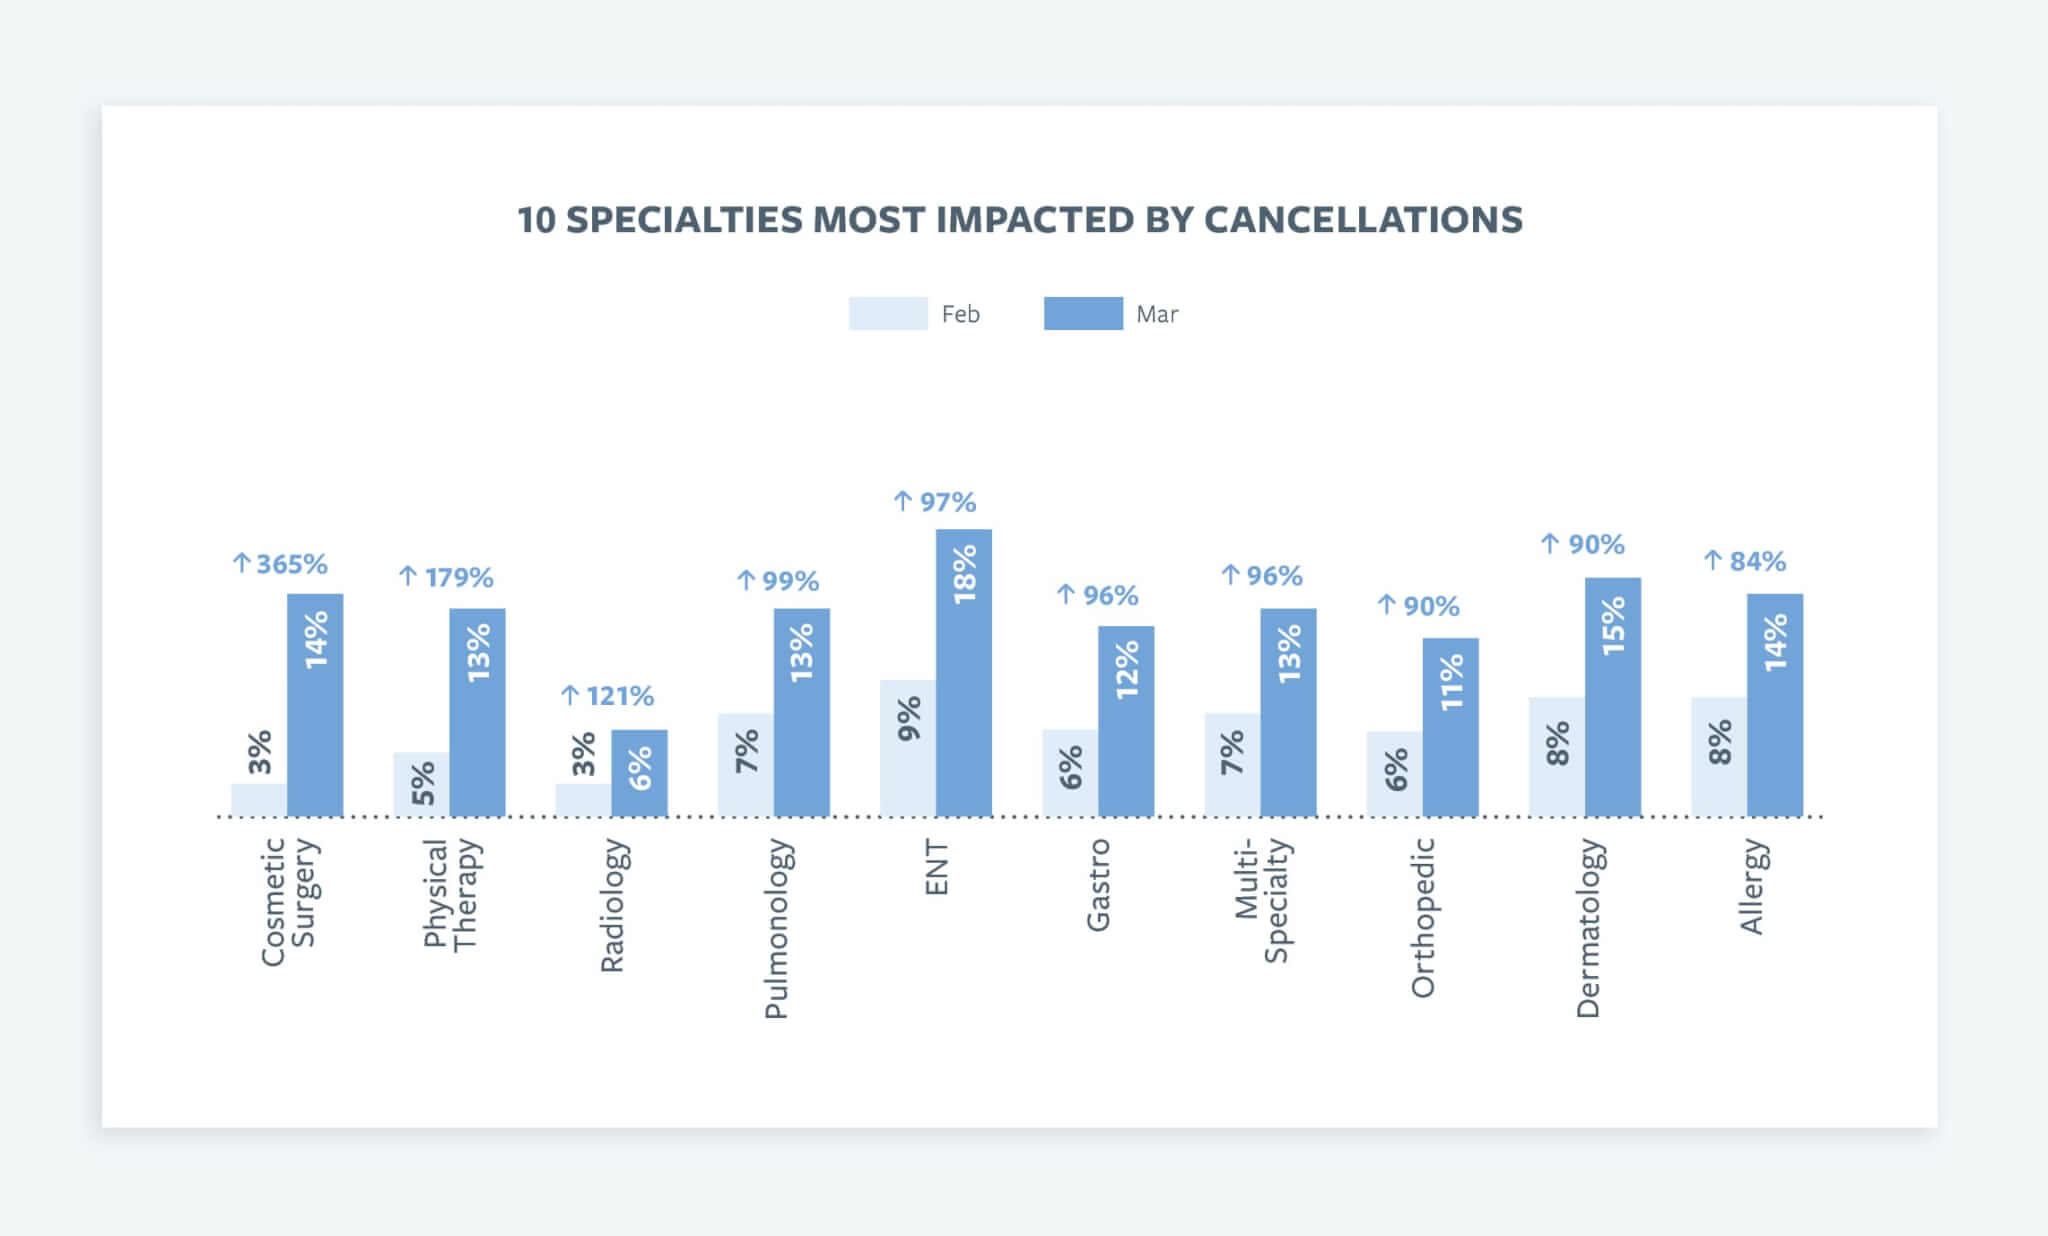 10 Specialties Most Impacted by Cancellations Chart